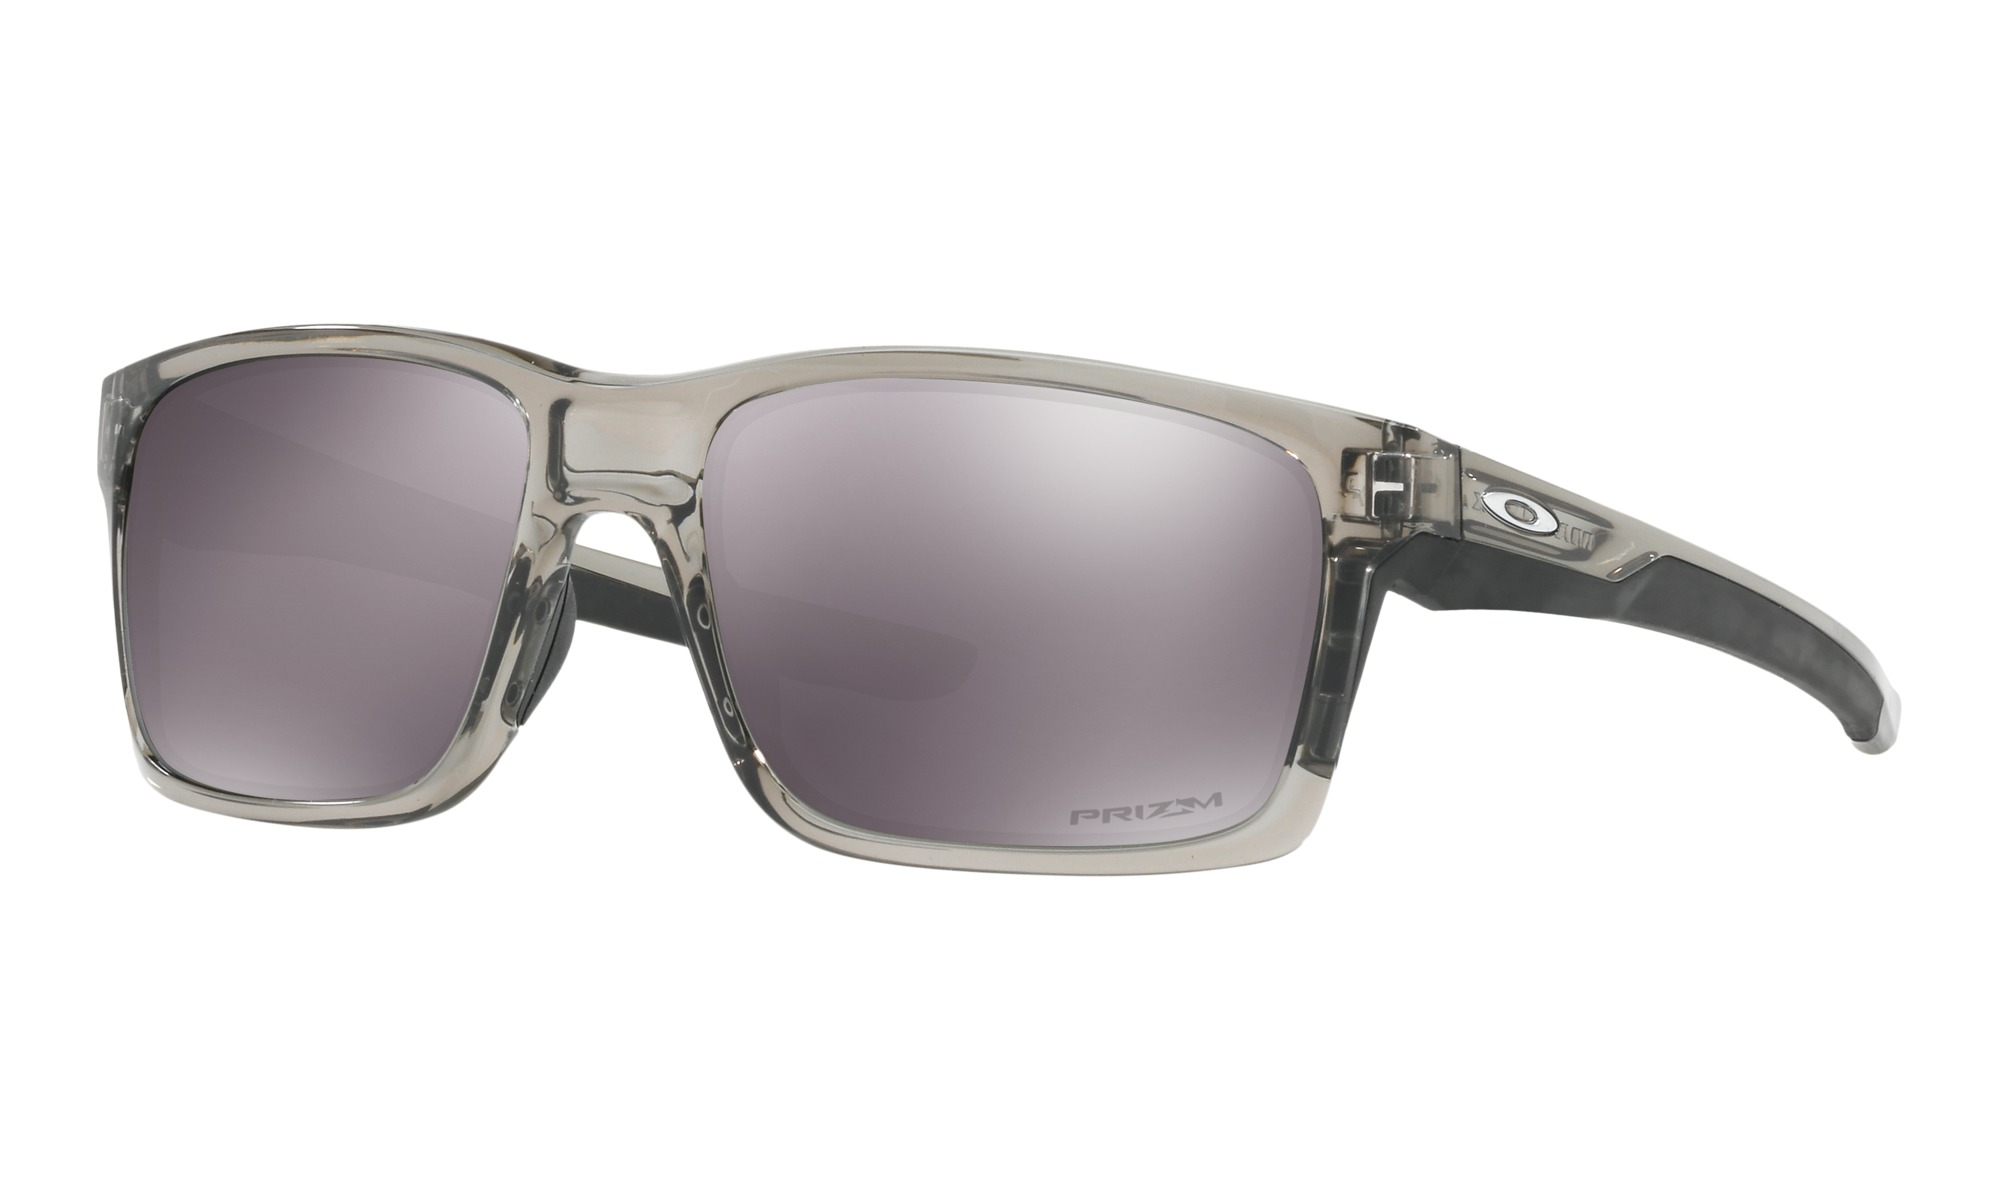 MAINLINK™ PRIZM™ - The innovation behind a comfortably secure fit, Unobtainium® is integrated into the classic styling of this O Matter™ frame inspired by Oakley Crosslink™.